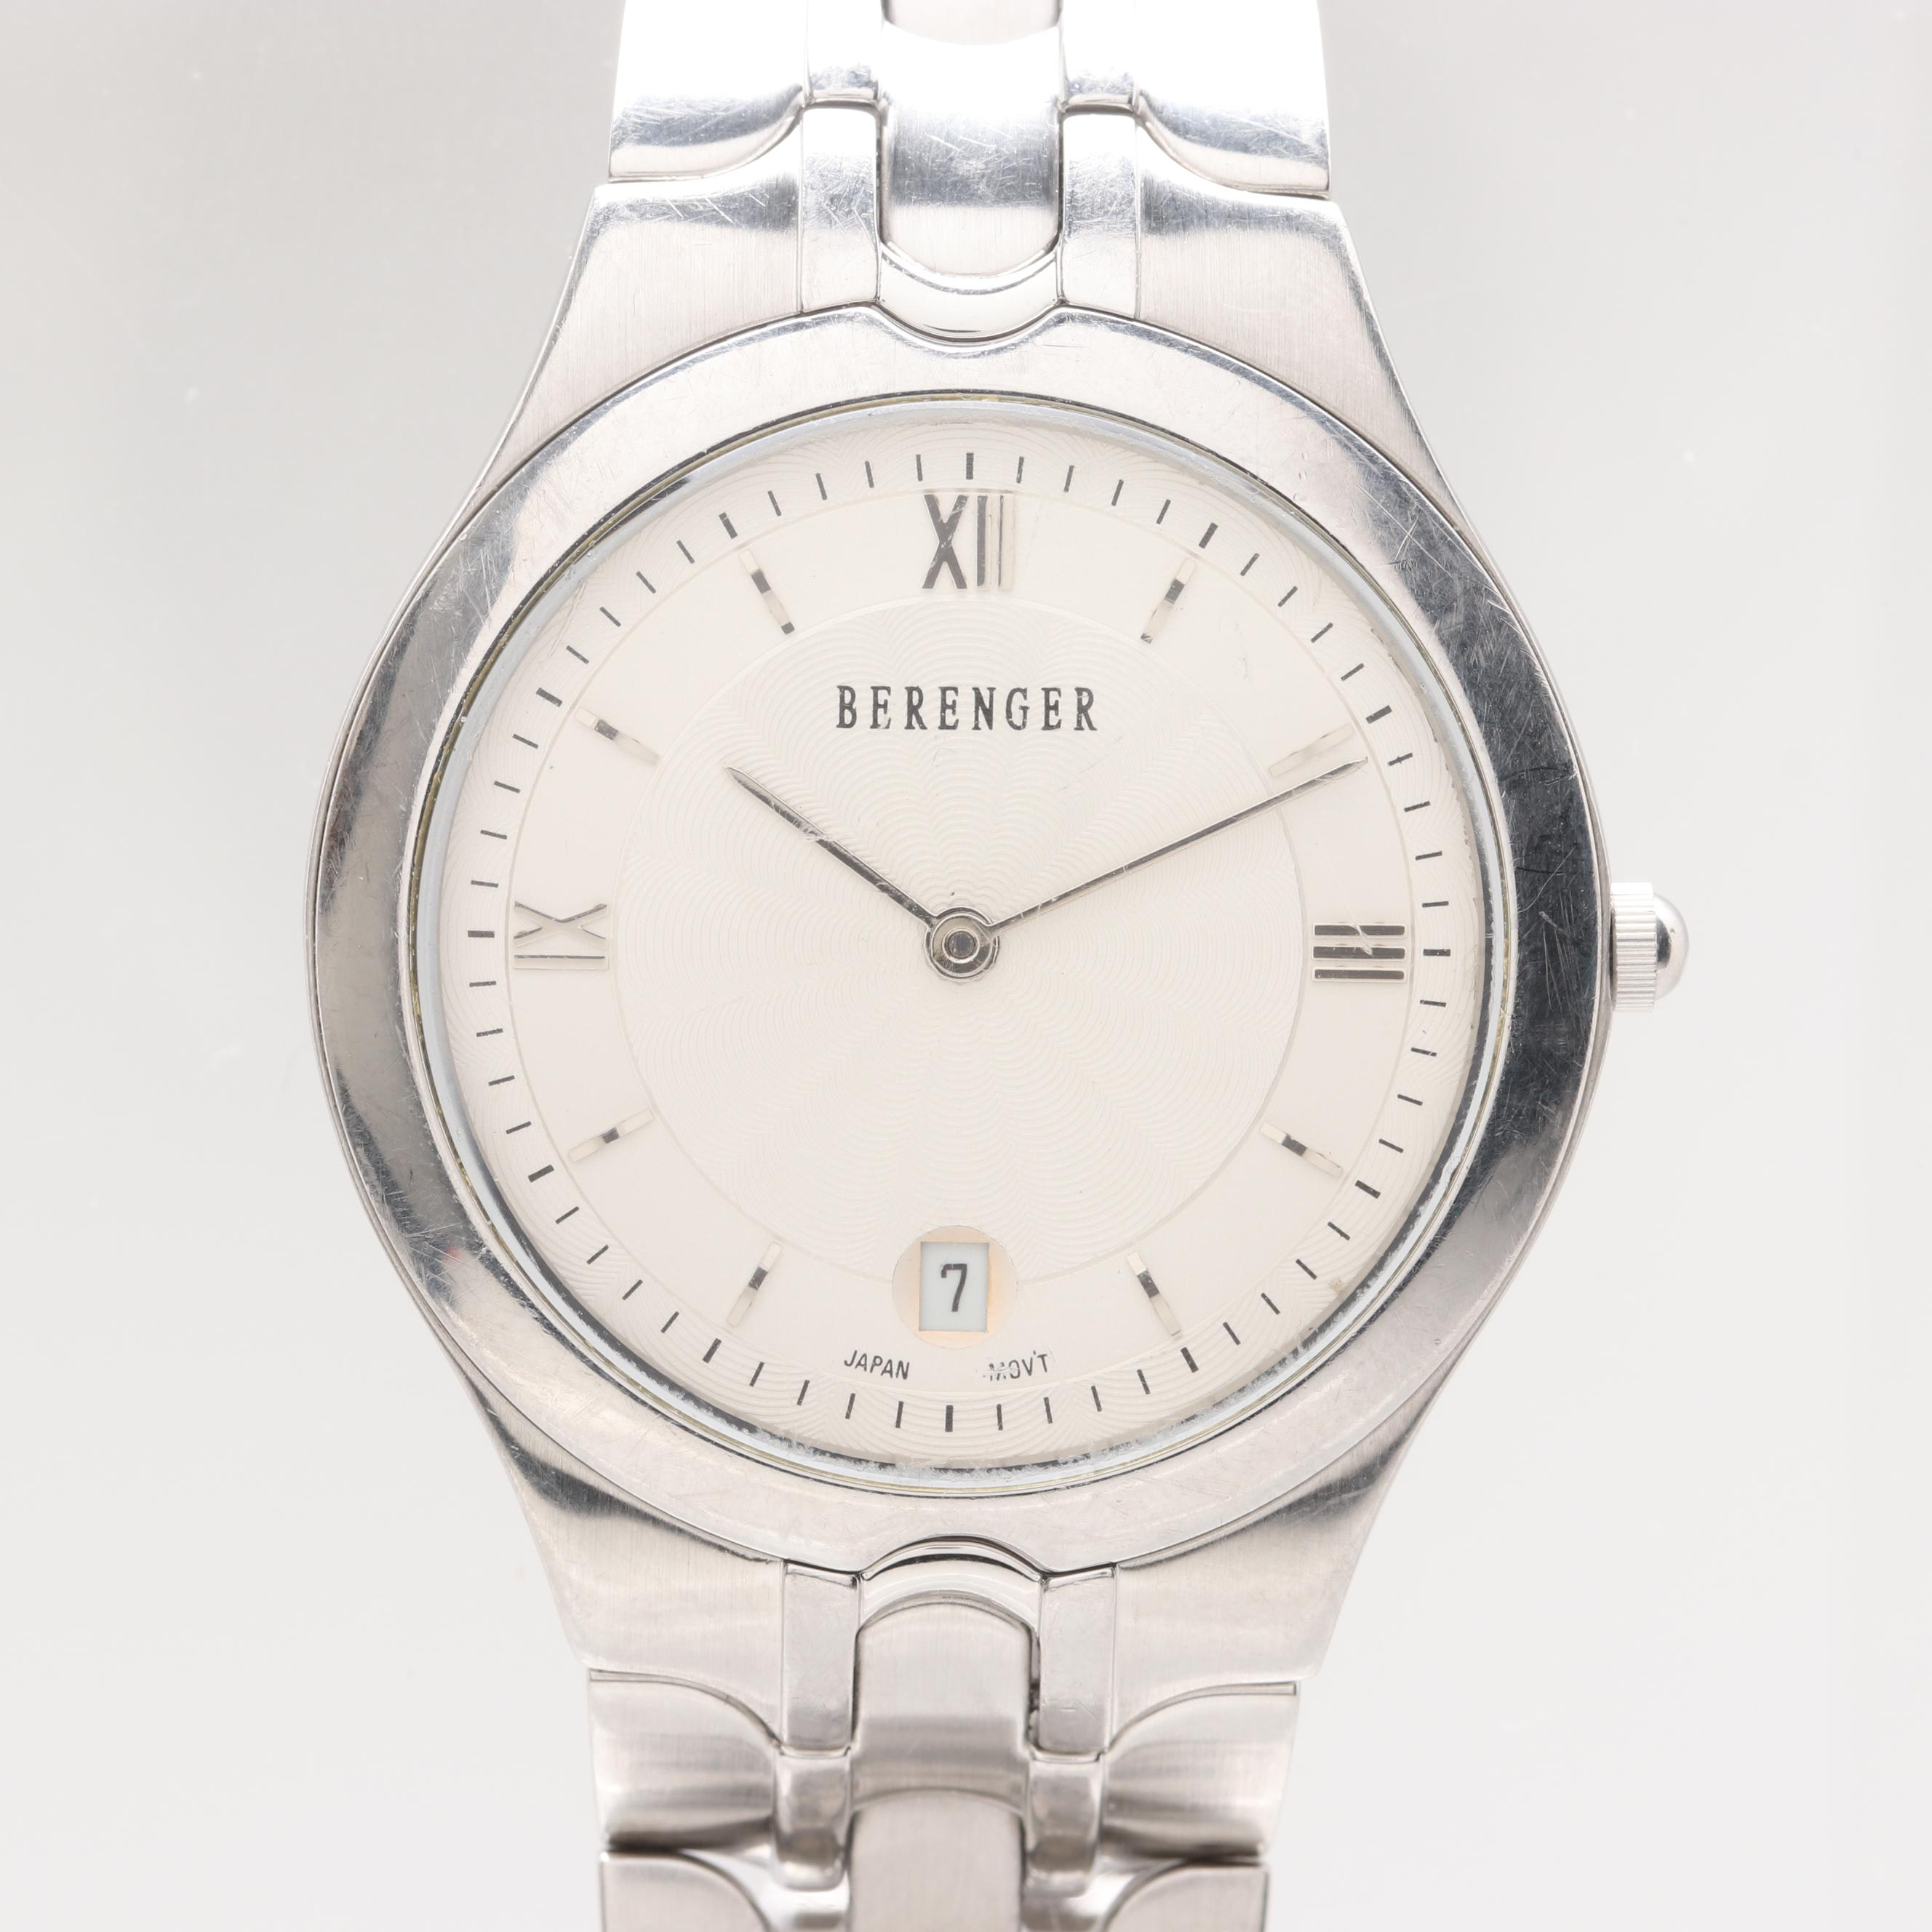 Berenger Stainless Steel Wristwatch